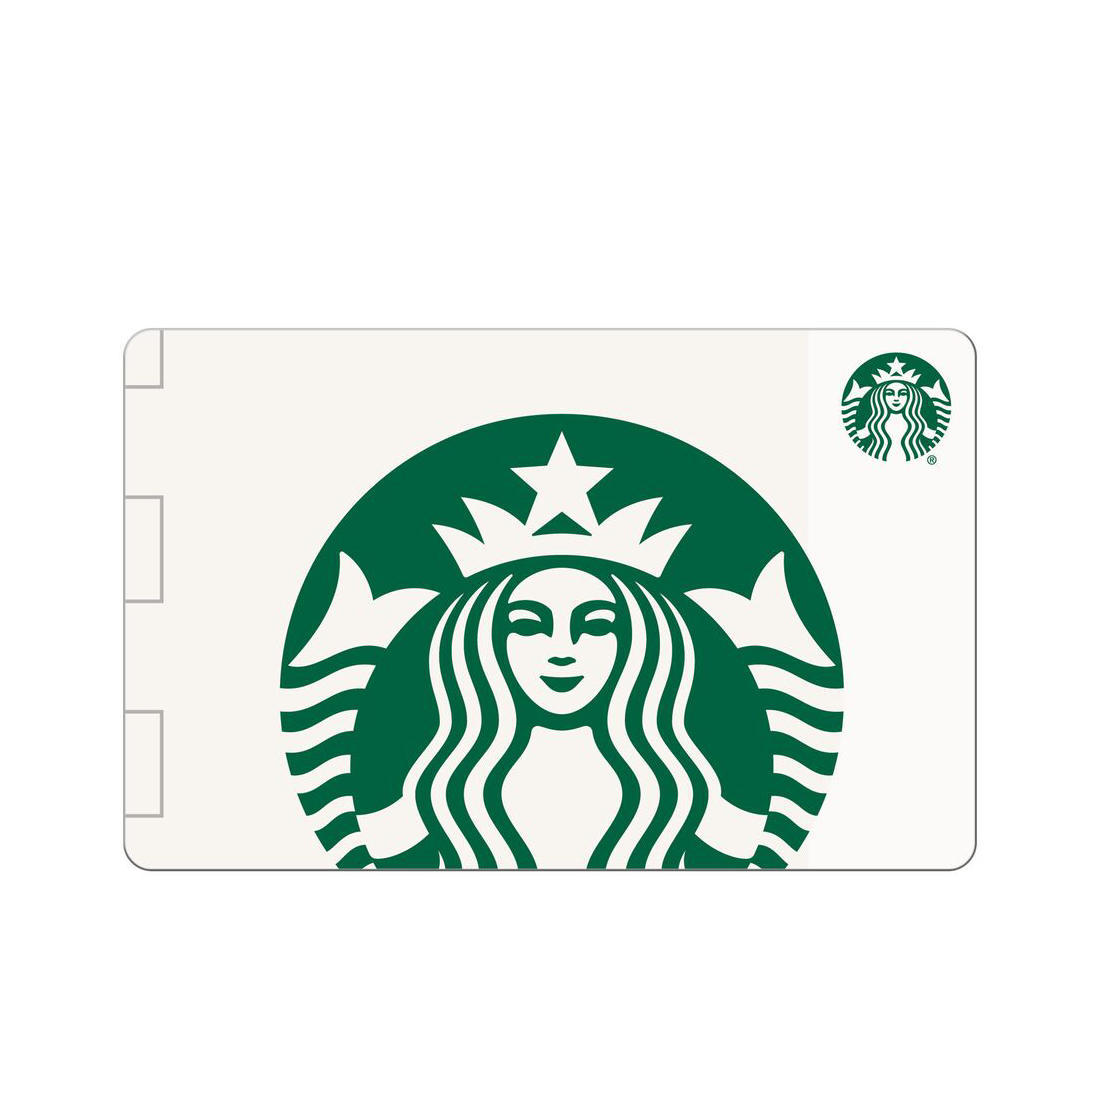 10 Starbucks Gift Card 3 Pk